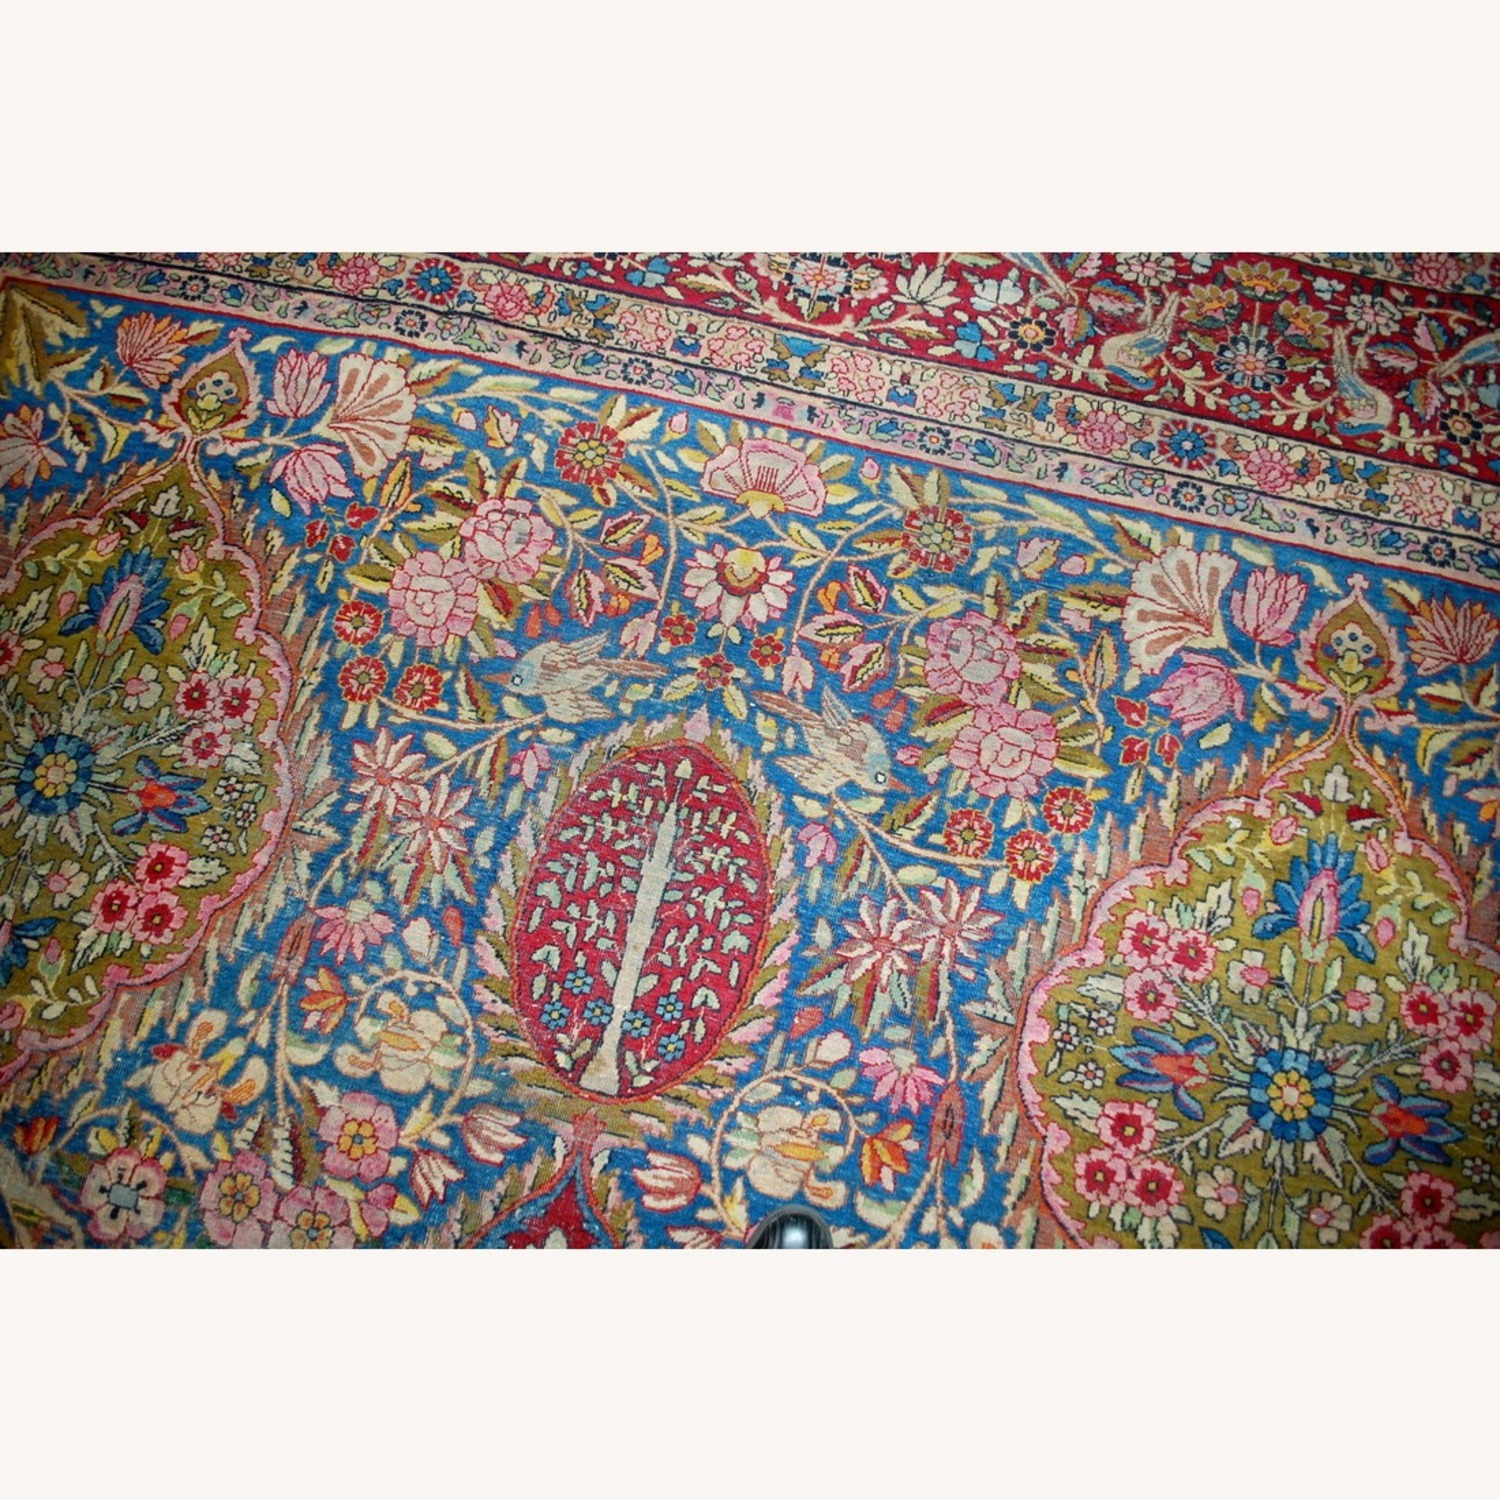 Hand made Antique Persian Yazd Rug - image-9